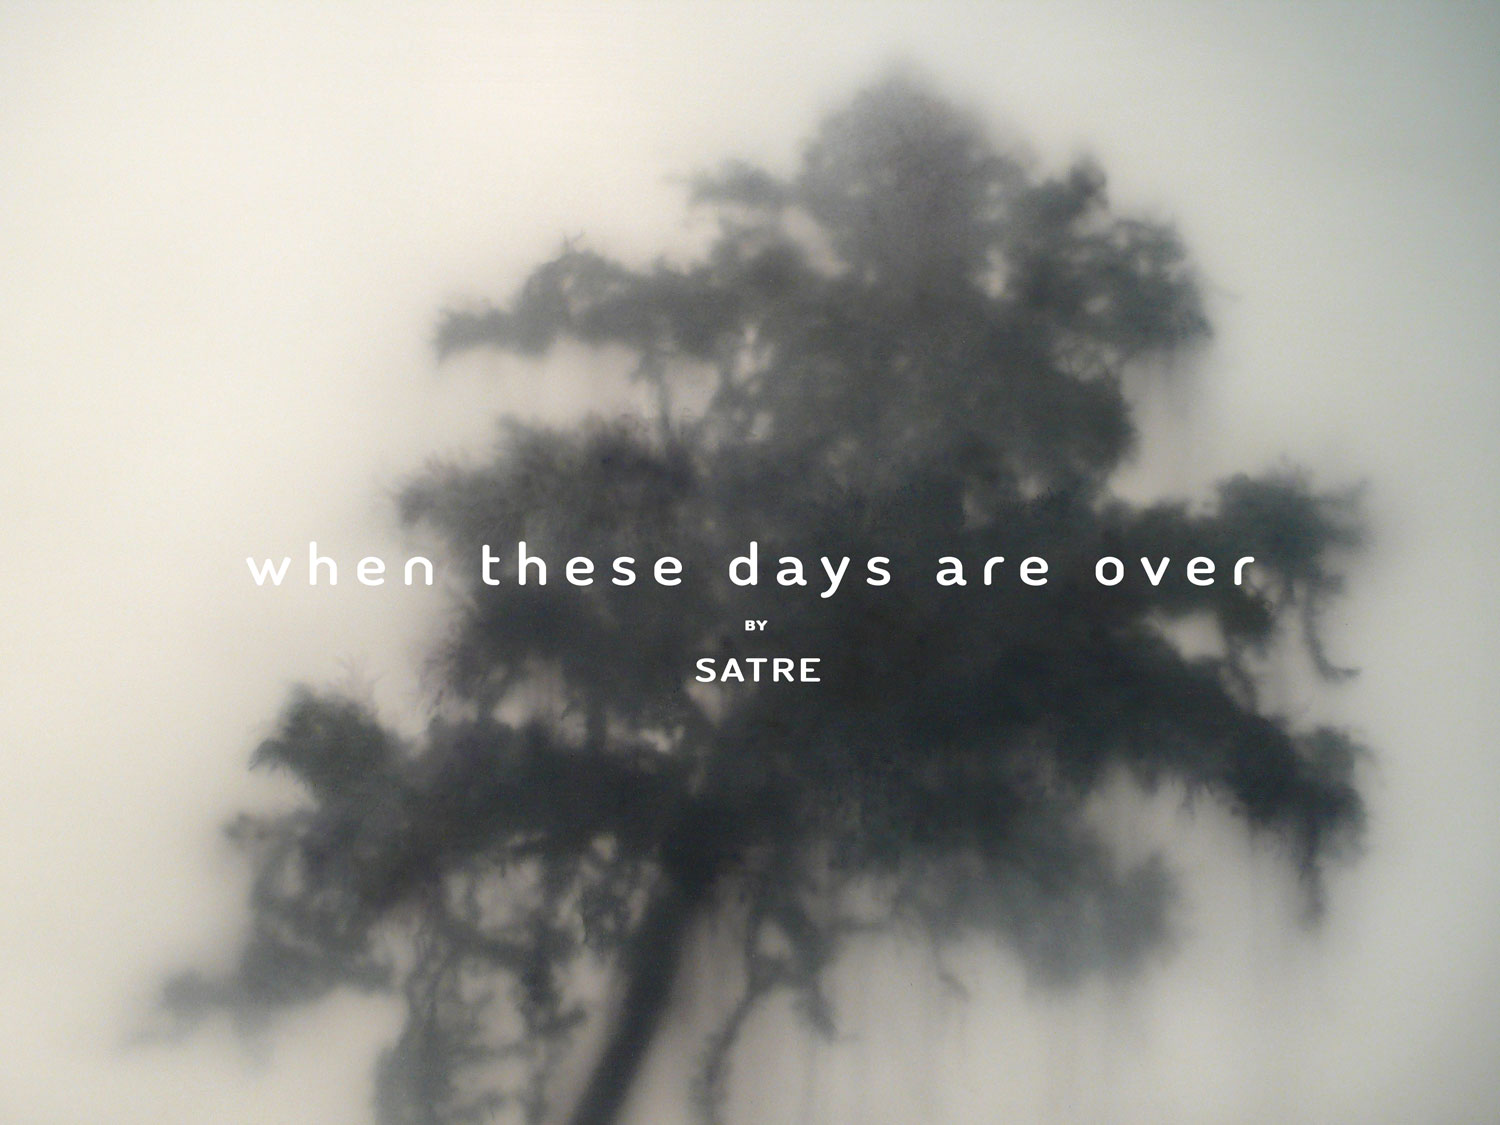 When-these-days-are-over-front-1500-geir-satre.jpg